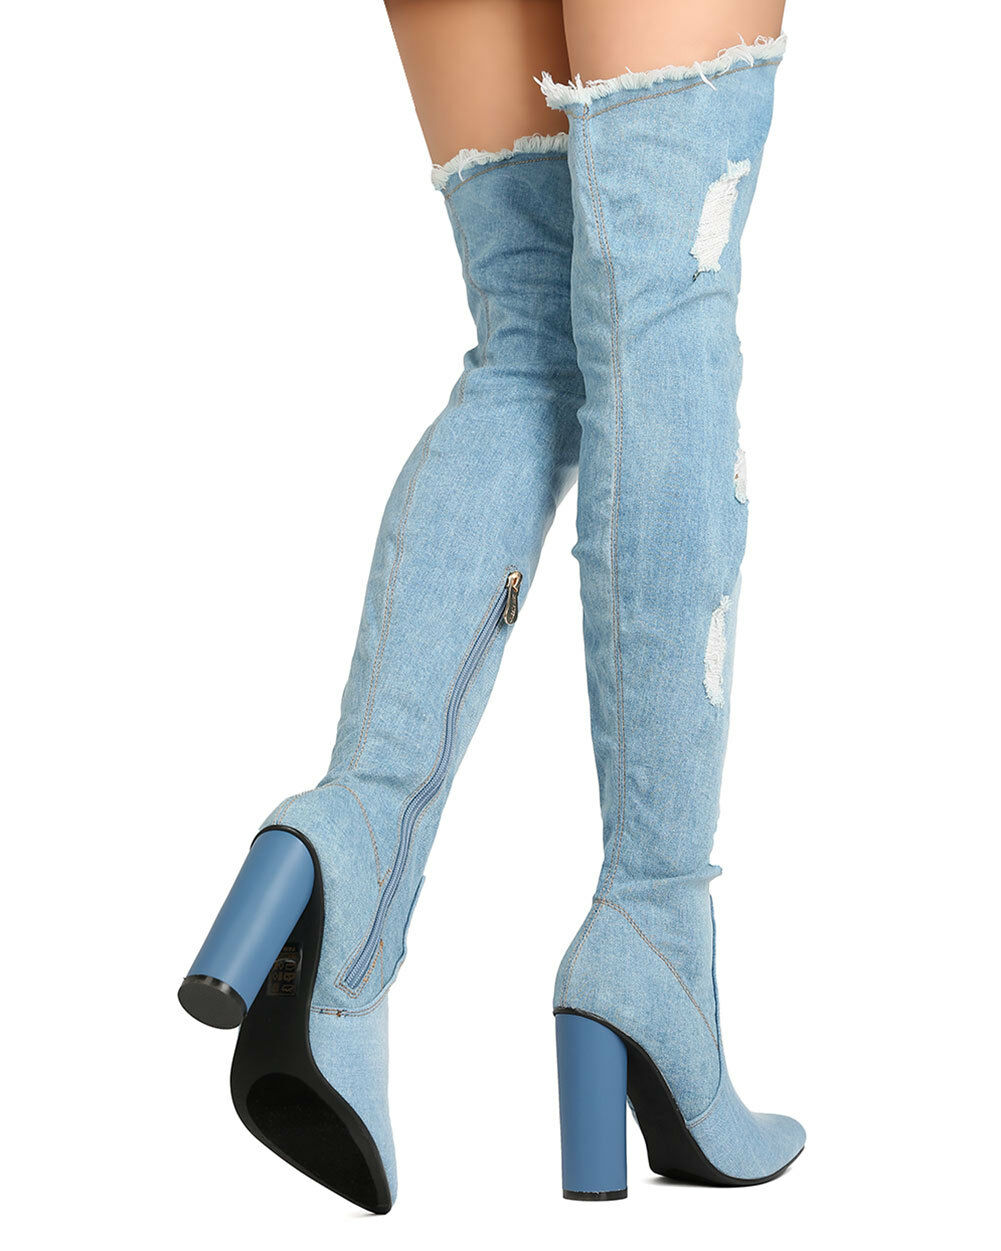 New Damens Cape Thigh Robbin Paw-42 Ripped Denim Thigh Cape High Block Heel Boot 0de373